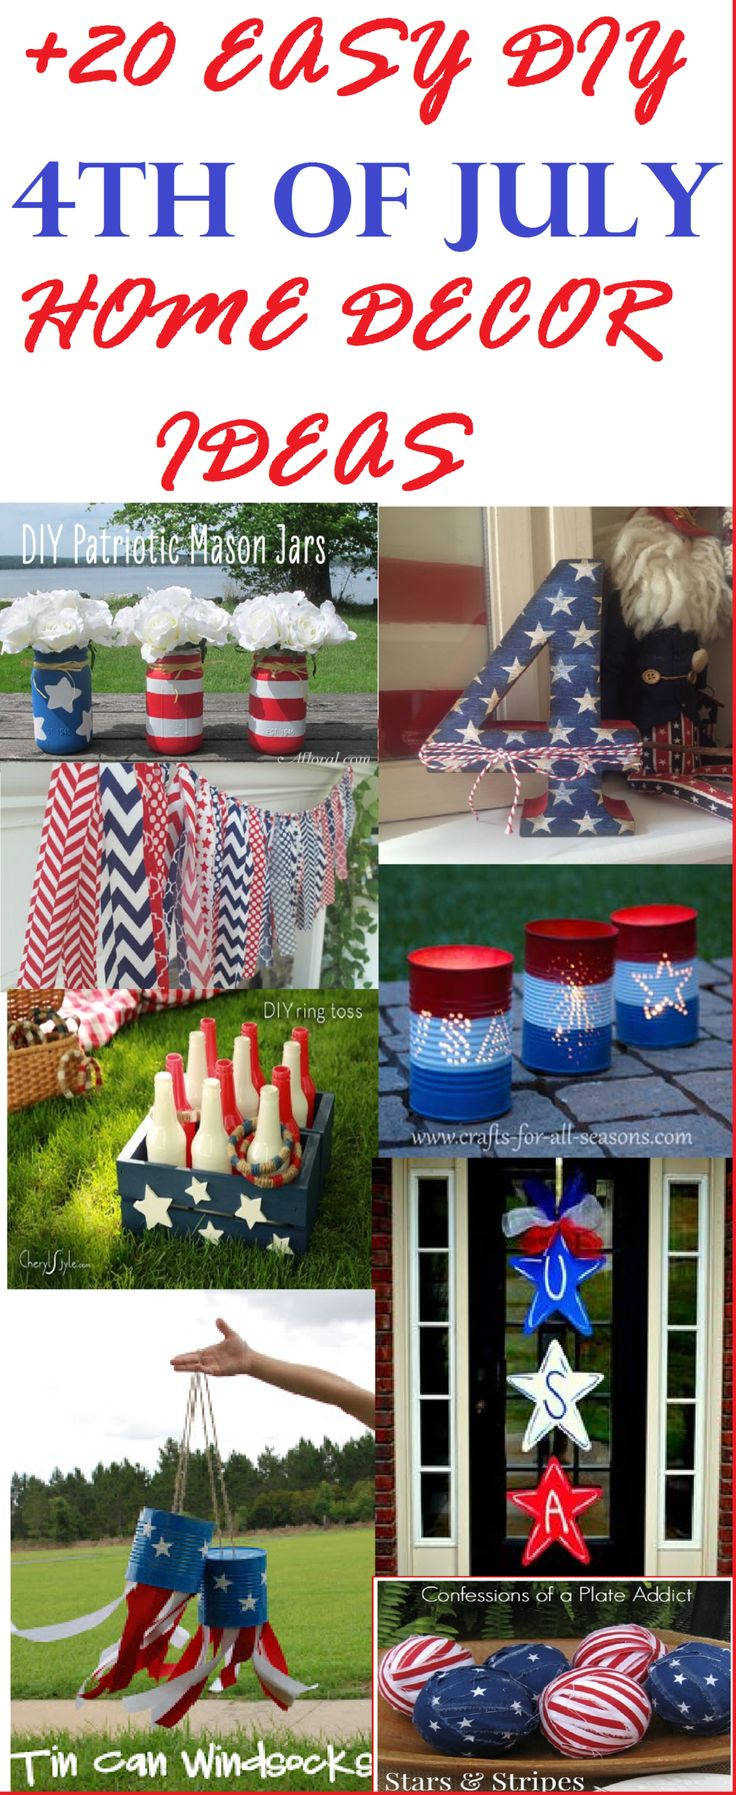 25 Best Ideas About July 4th On Pinterest 4th Of July